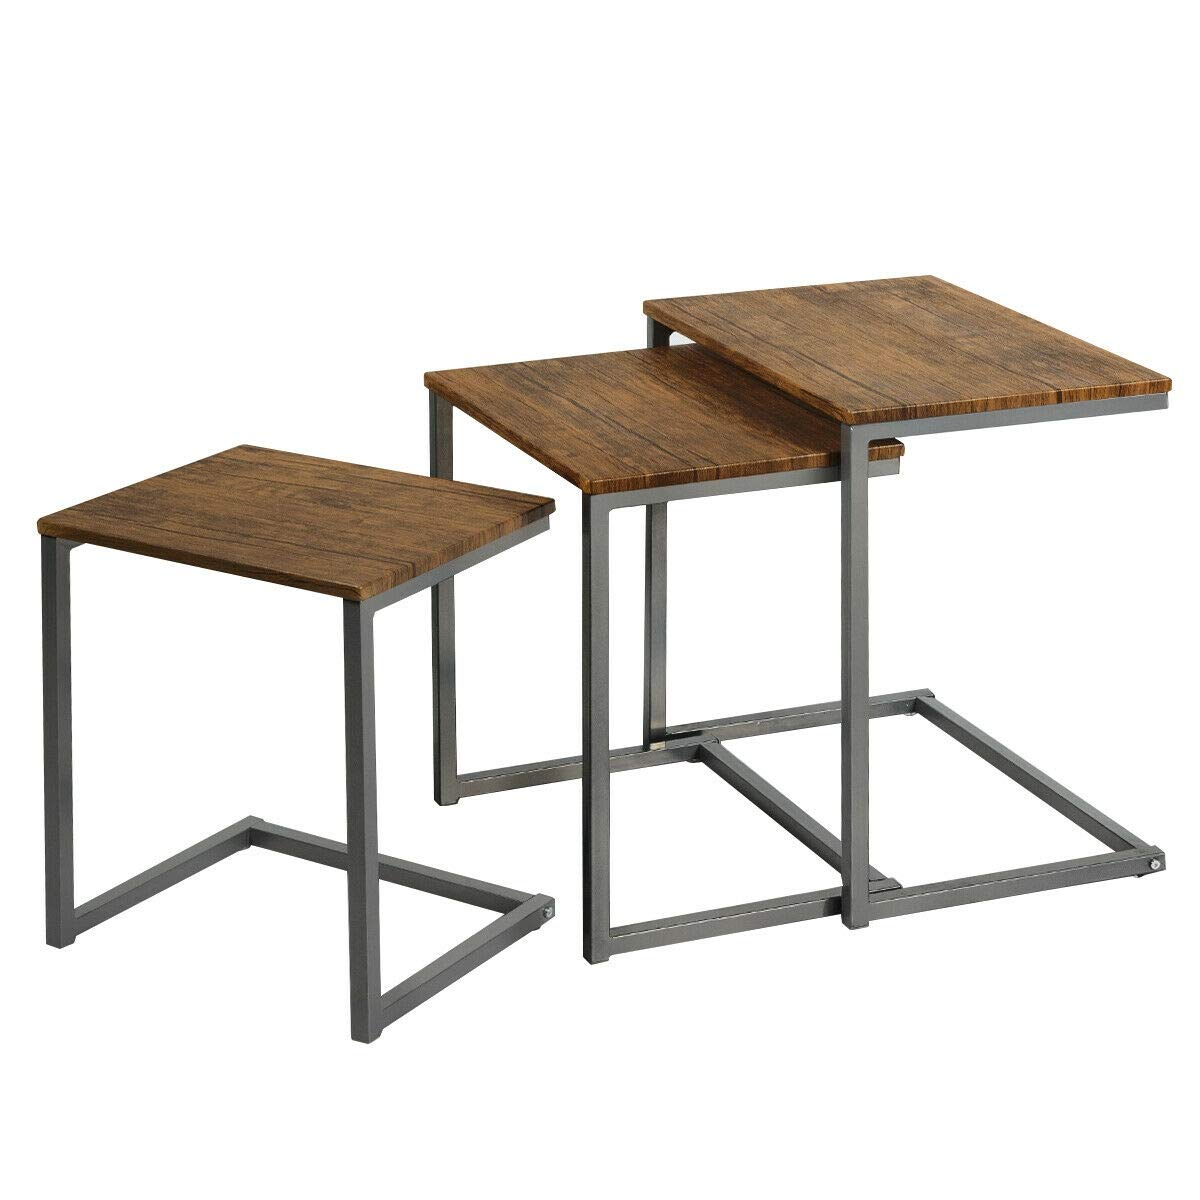 JF World 3 Pices Multifunctional Coffee End Table Set by JF World